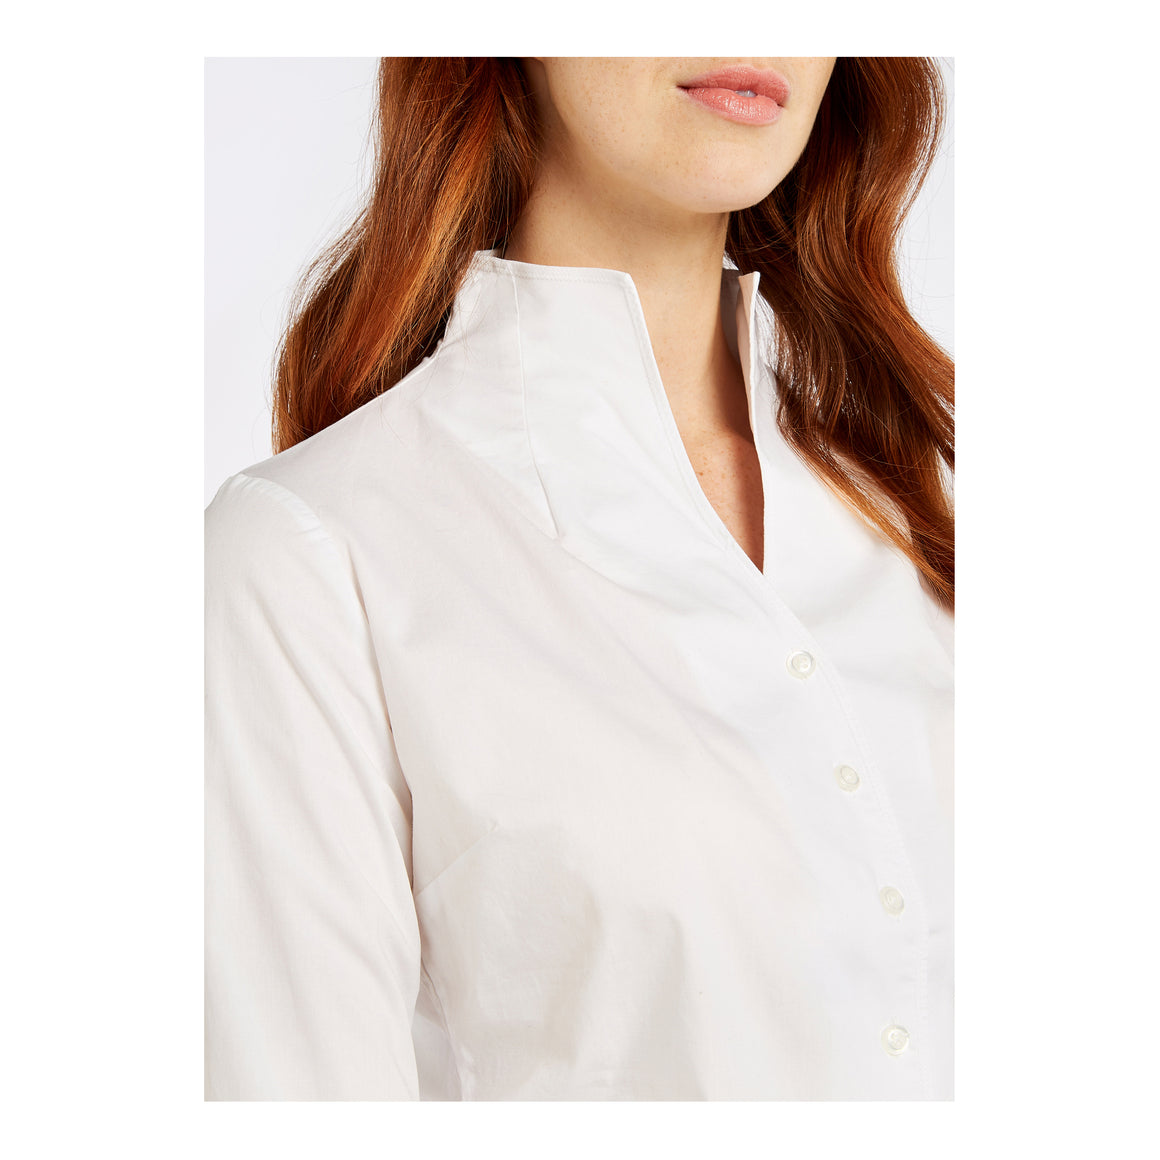 Snowdrop Blouse for Women in White